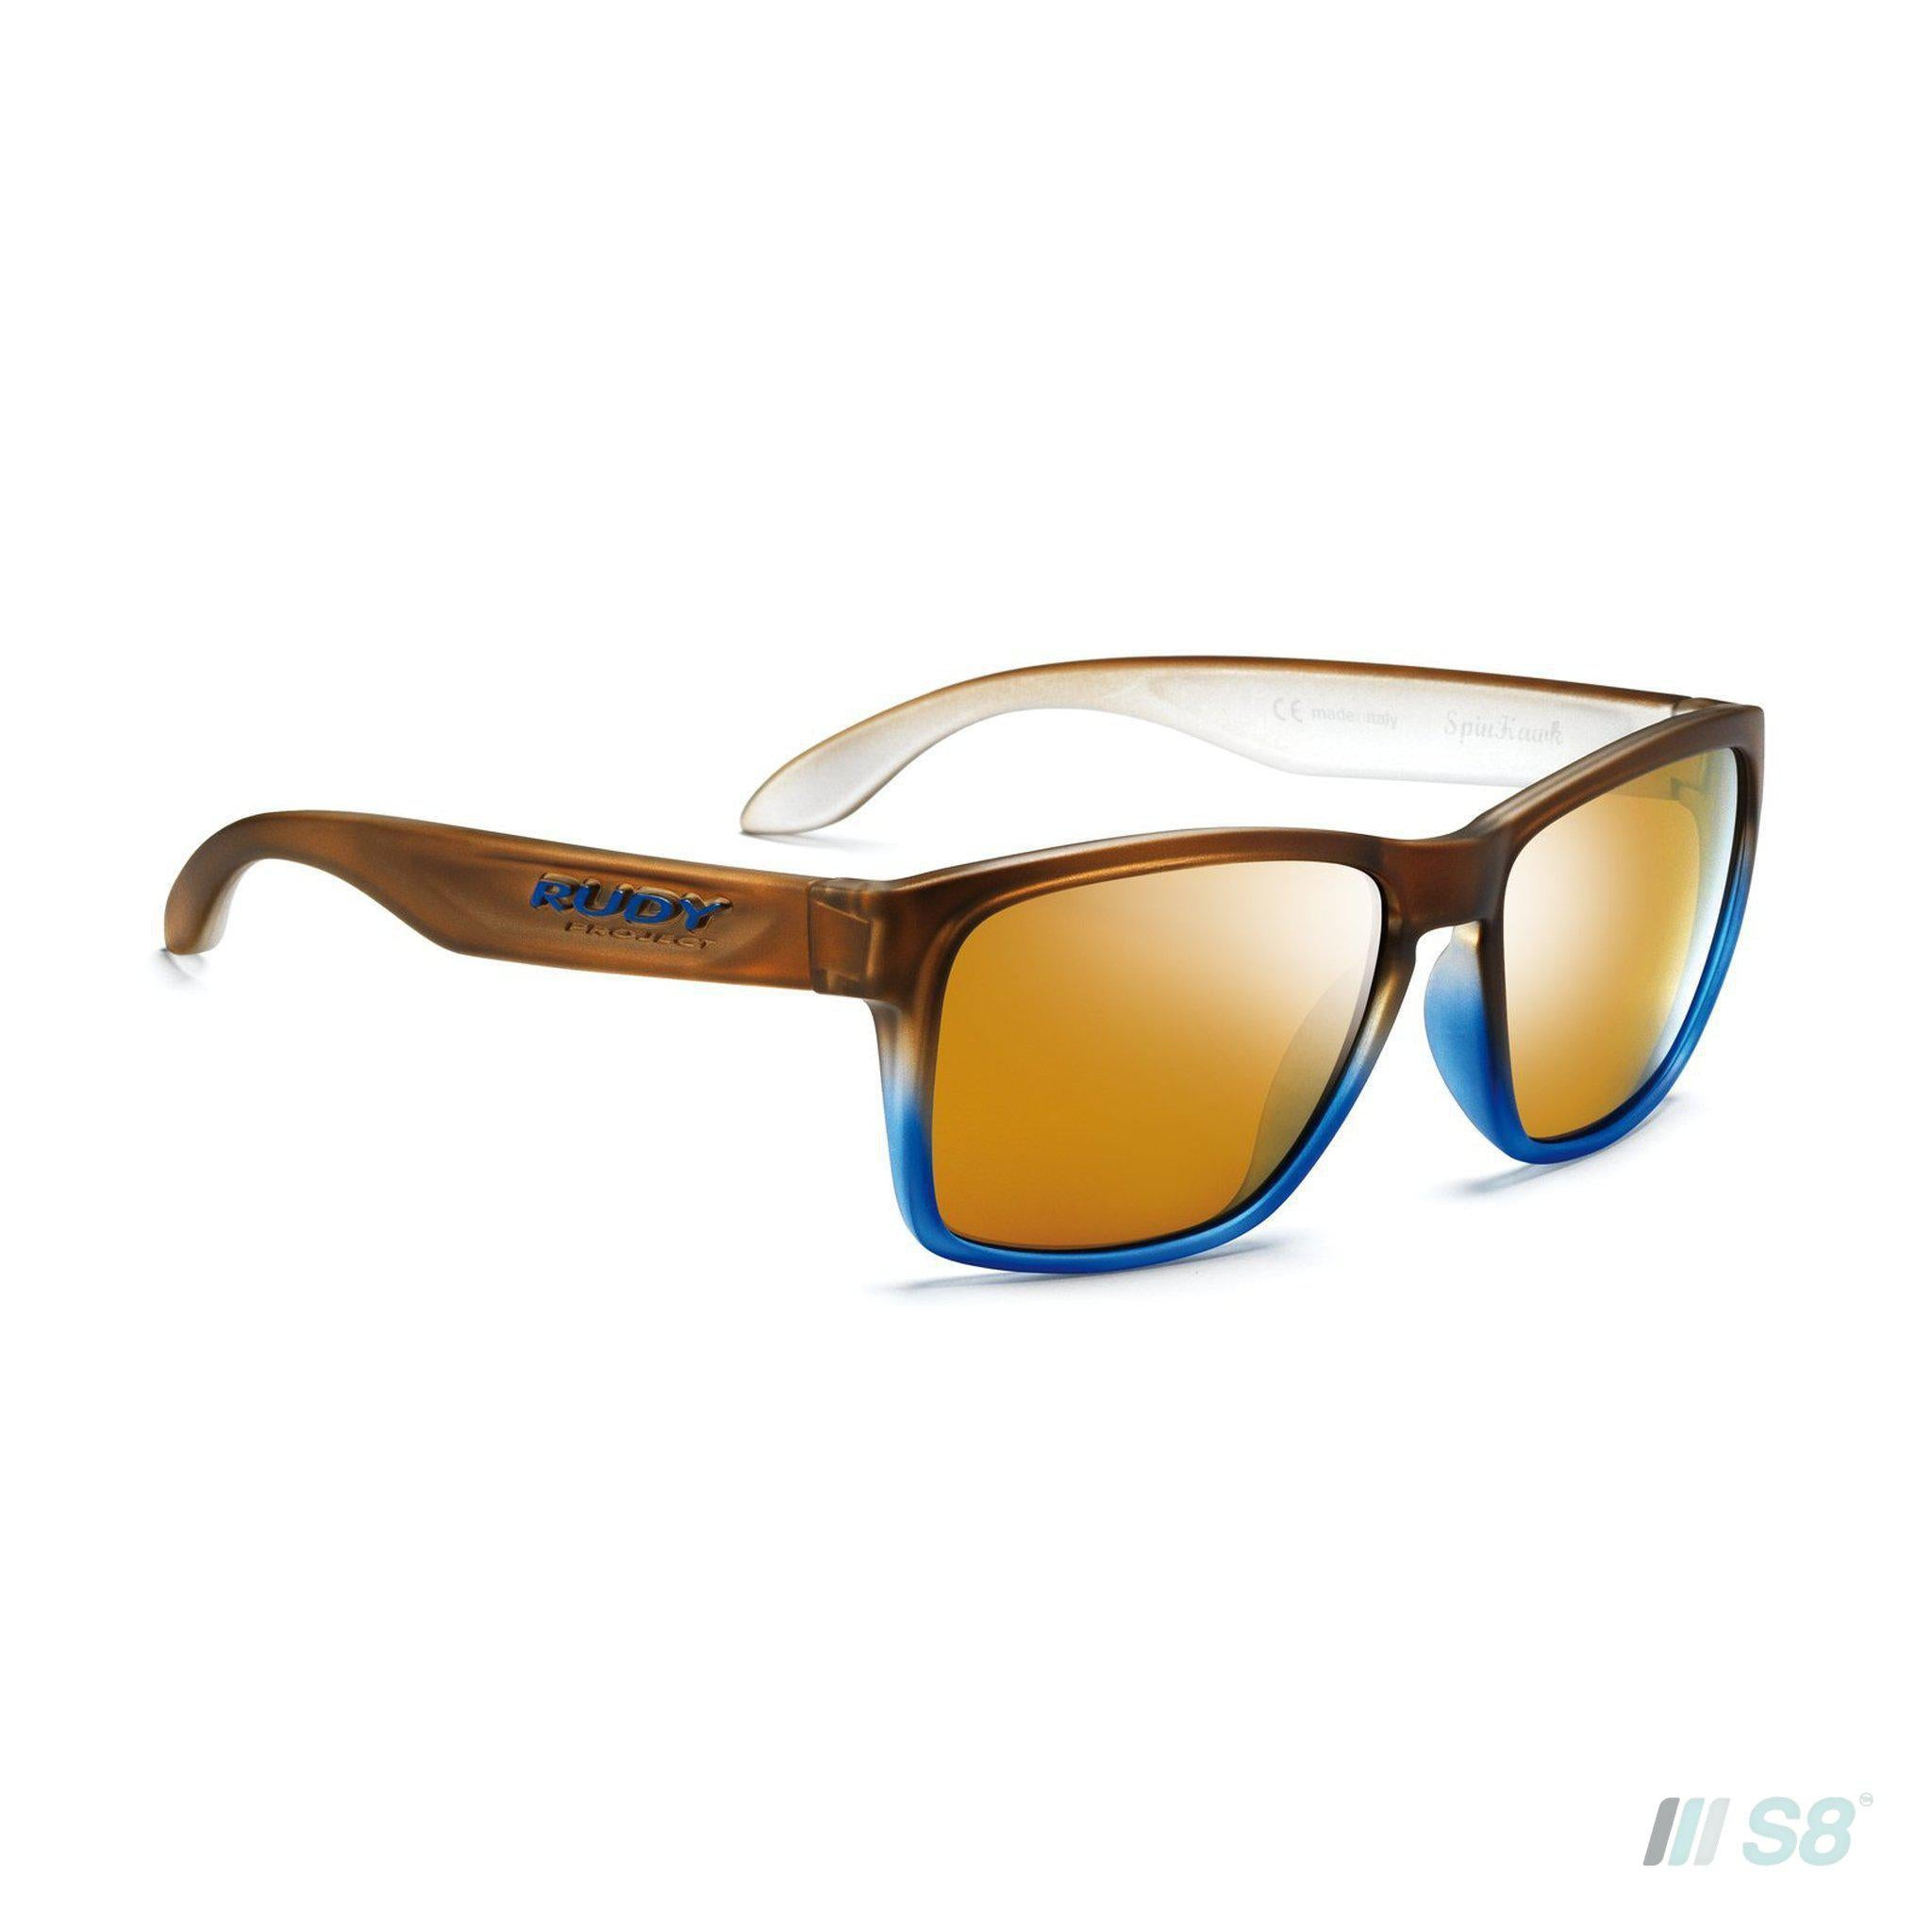 Rudy Project - Spinhawk Sunglasses-Rudy Project-S8 Products Group